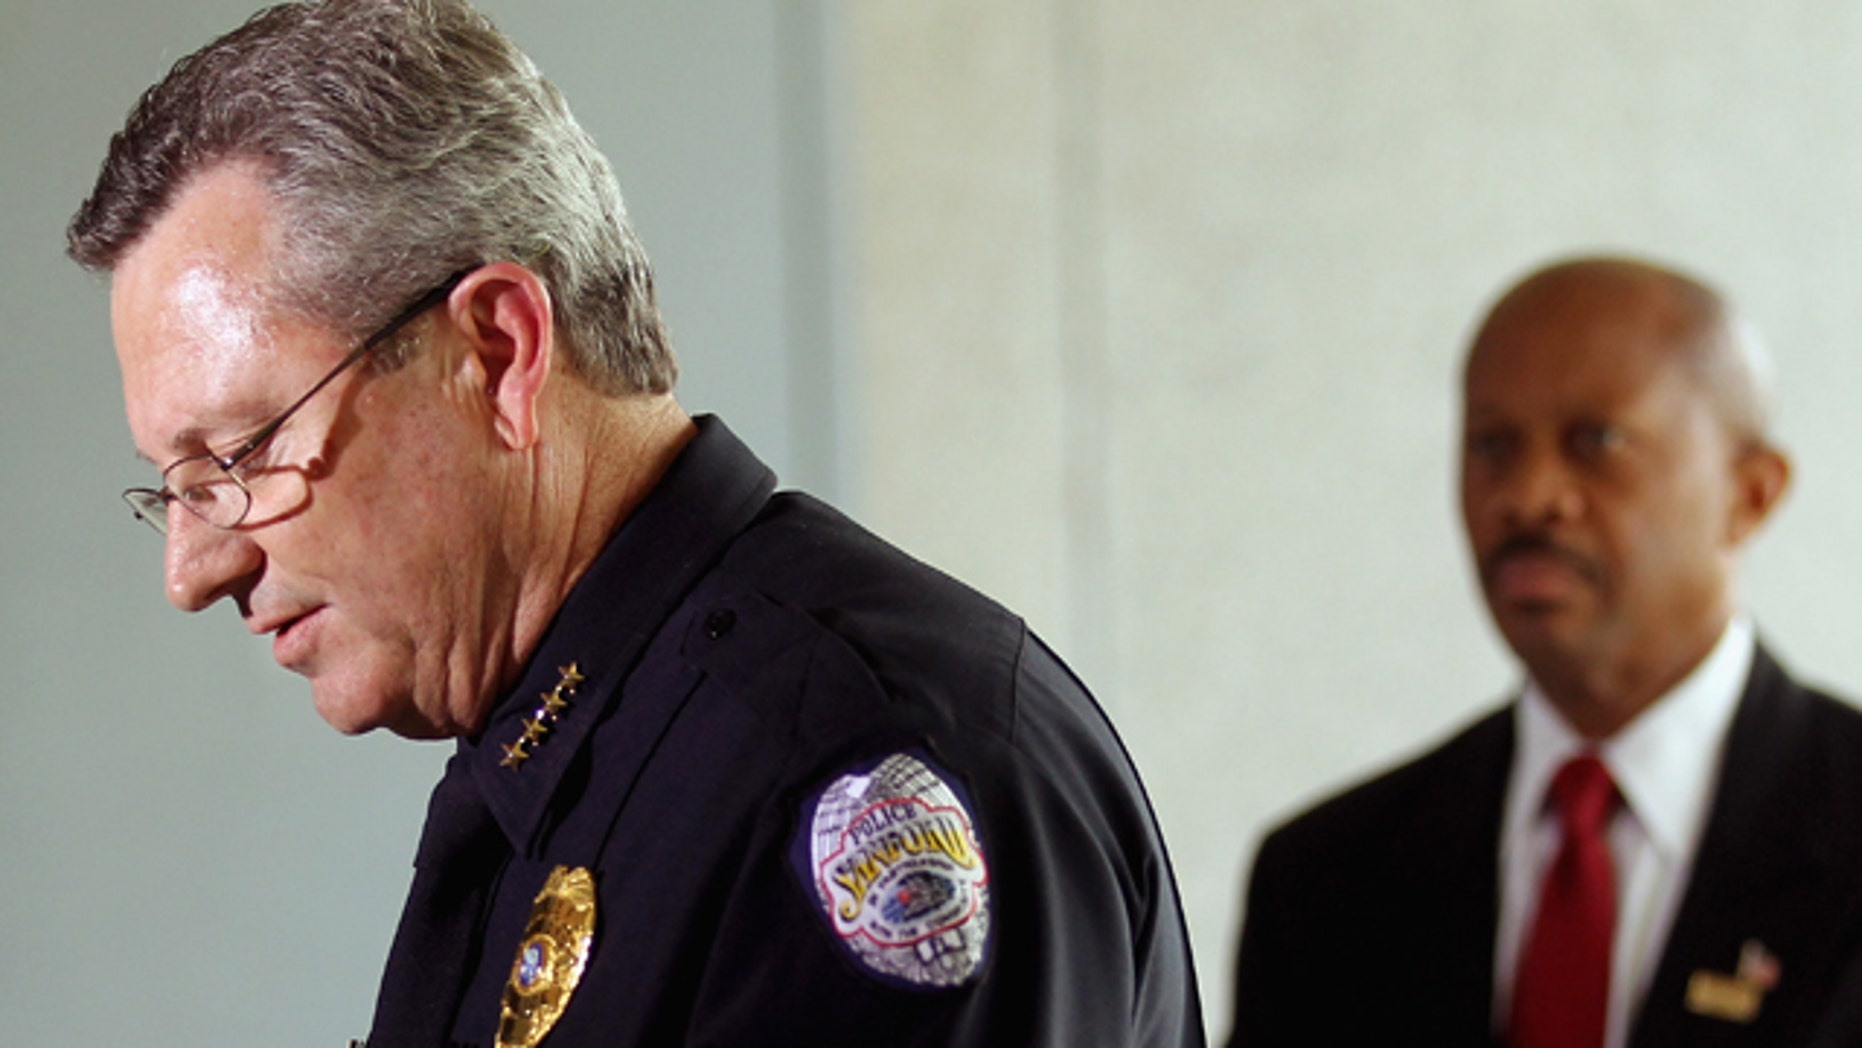 March 22, 2012:  Sanford Police Department Chief Bill Lee (L) speaks while announcing he will temporarily step down in the wake of the Trayvon Martin killing as Sanford city manager Norton Bonaparte Jr. (R) stands by  in Sanford, Florida.